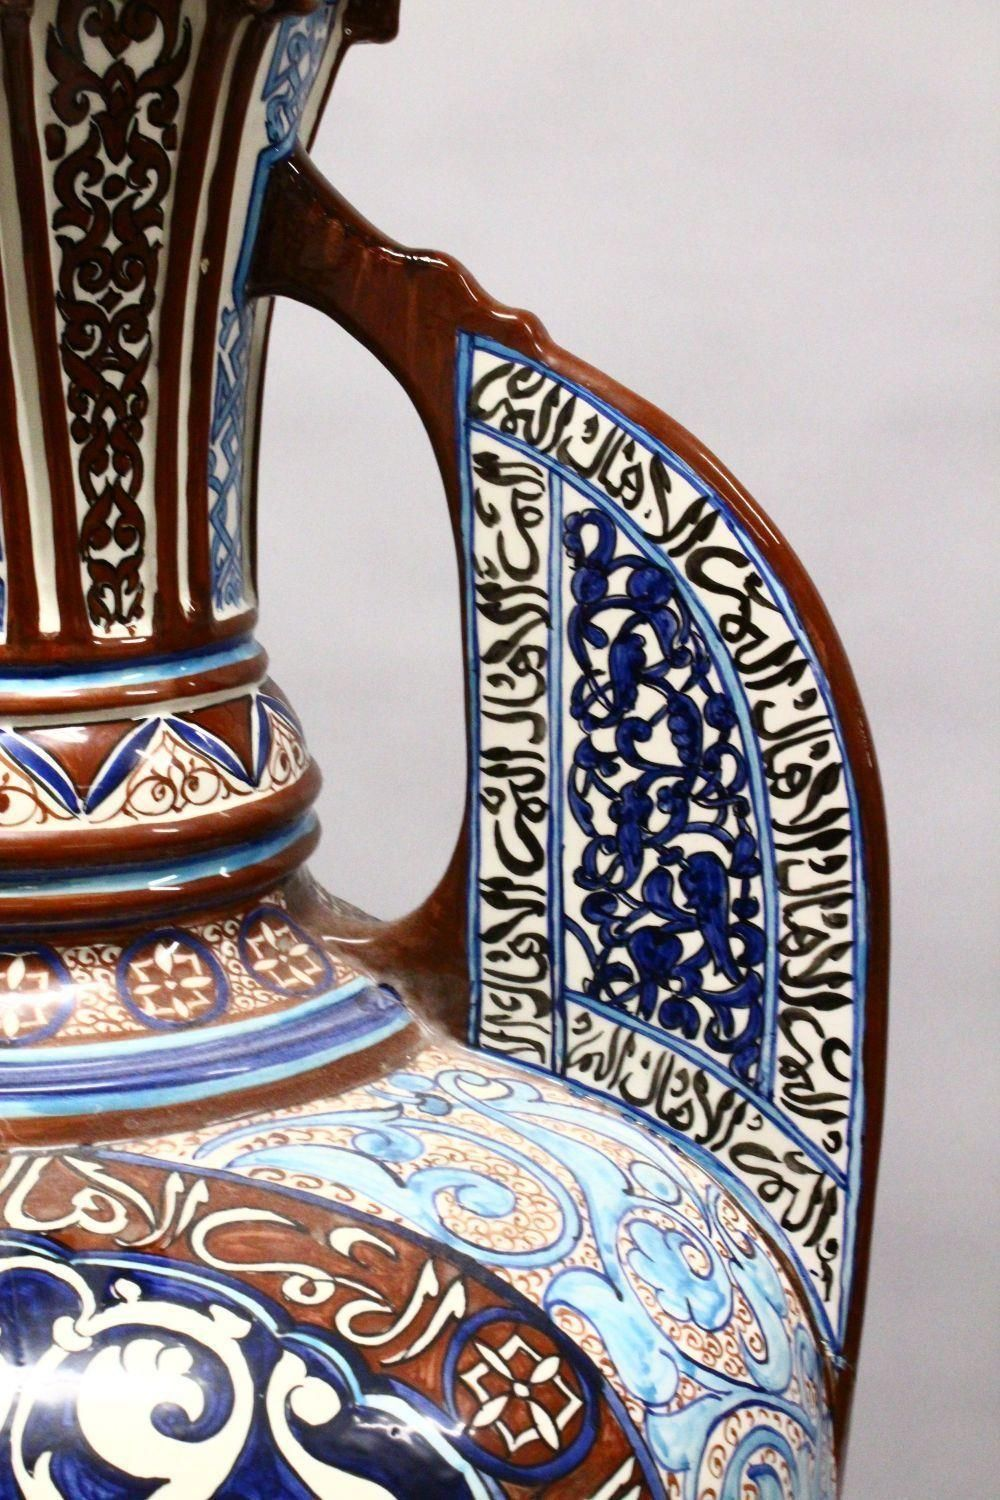 A HUGE 19TH CENTURY ISLAMIC HISPANO MORESQUE POTTERY ALHAMBRA STYLE POTTERY VASE & STAND, possibly - Image 4 of 10